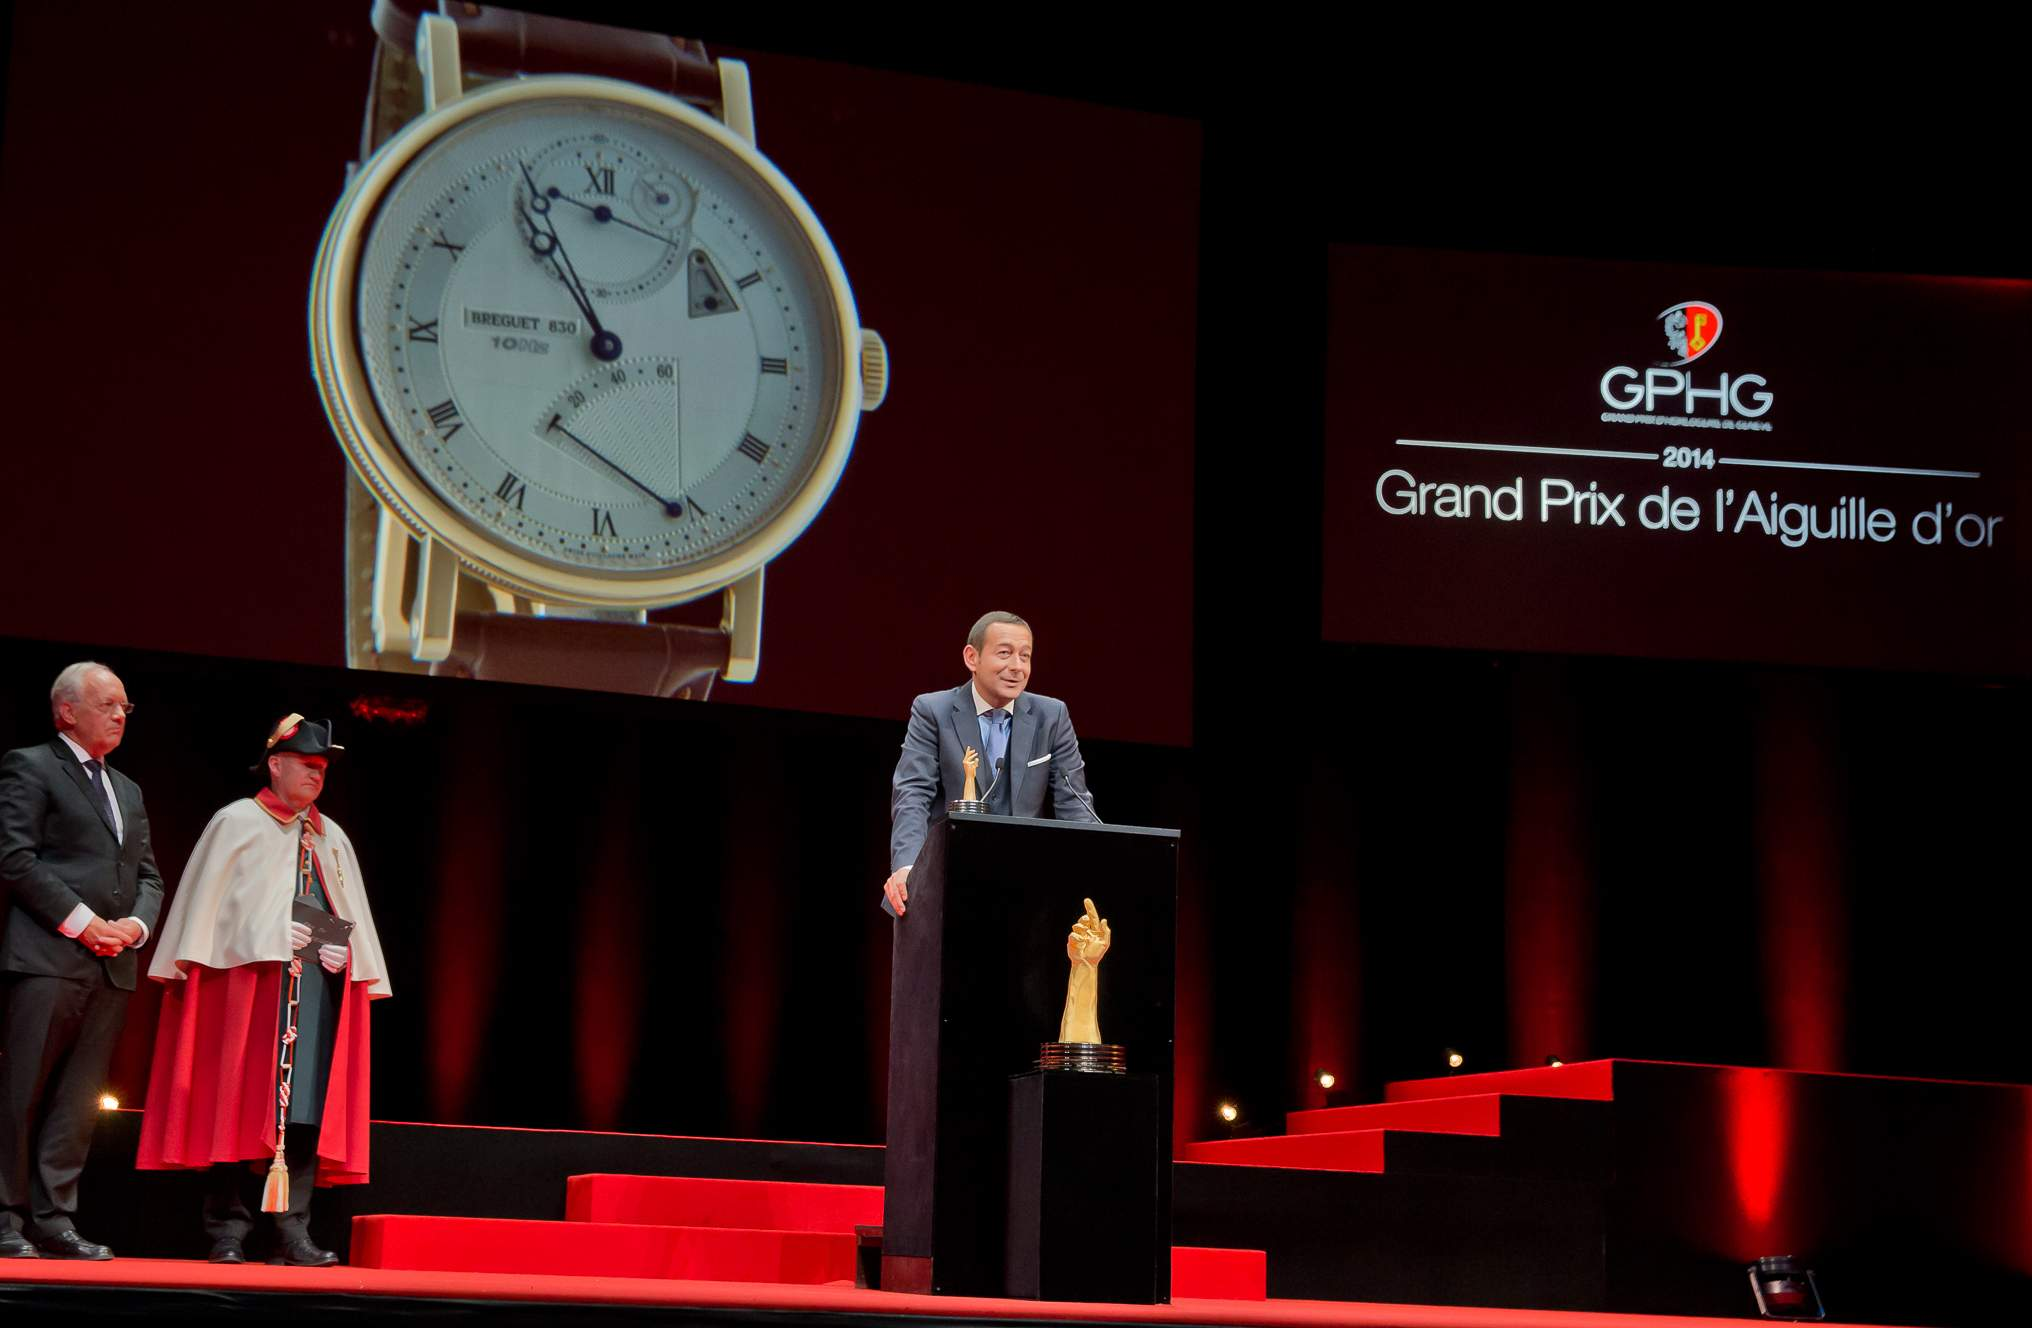 Johann Schneider-Ammann (Federal councillor) and Jean-Charles Zufferey (Vice-president of Breguet, winner of the « Aiguille d'Or » Grand Prix 2014)